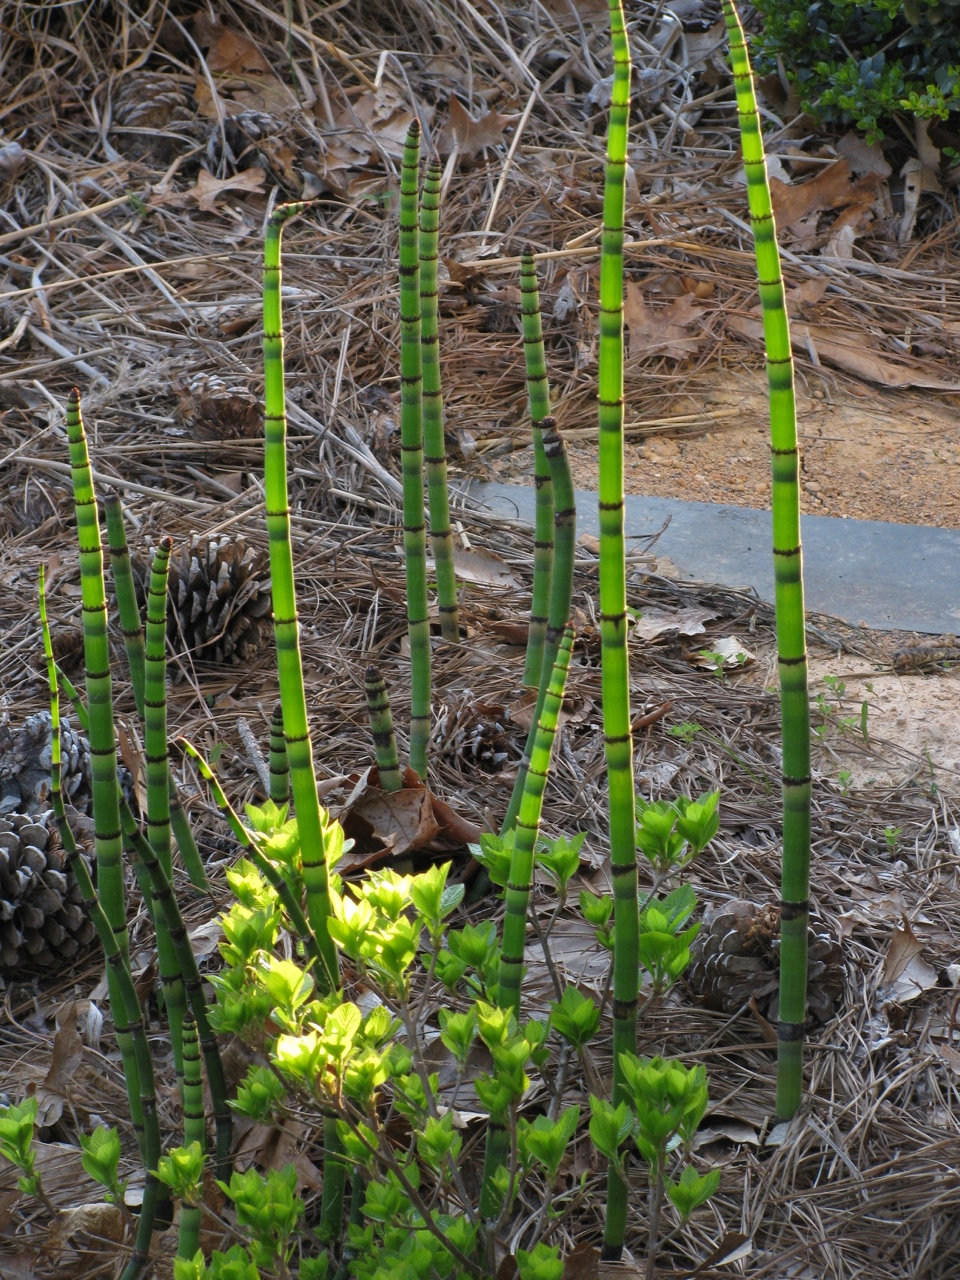 The Scientific Name is Equisetum hyemale ssp. affine [= Equisetum hyemale var. affine]. You will likely hear them called Tall Scouring-rush, River Scouring-rush. This picture shows the Plant with hollow, jointed, vertically ridged stems of Equisetum hyemale ssp. affine [= Equisetum hyemale var. affine]